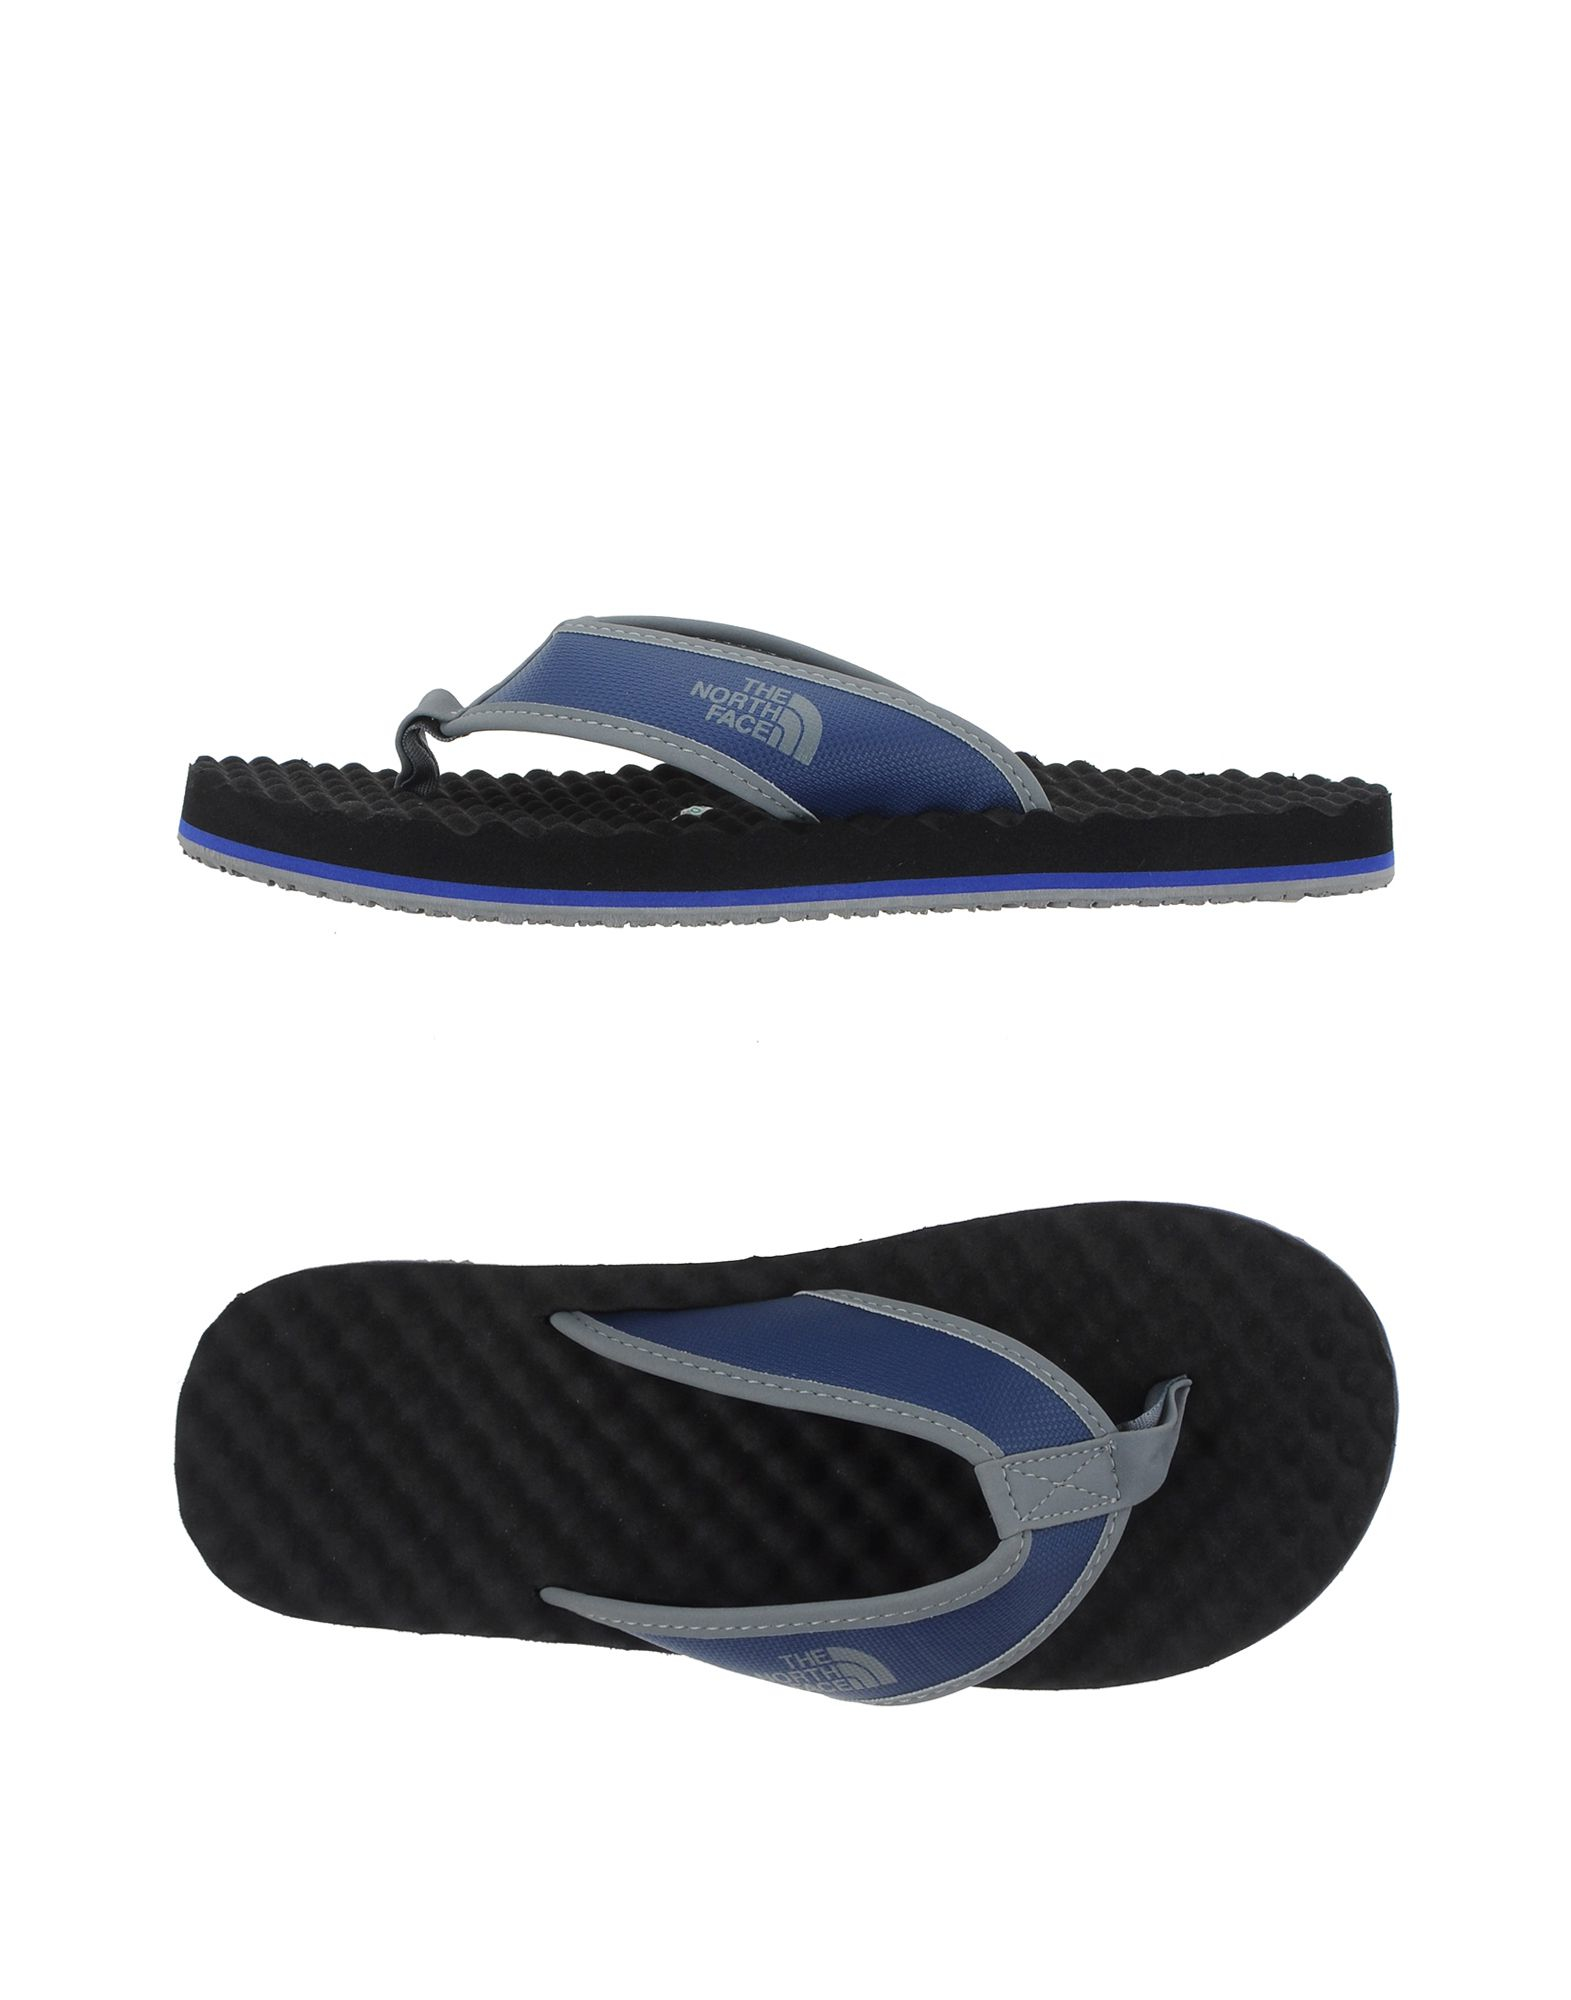 d1ee12b81 Lyst - The North Face Thong Sandal in Blue for Men